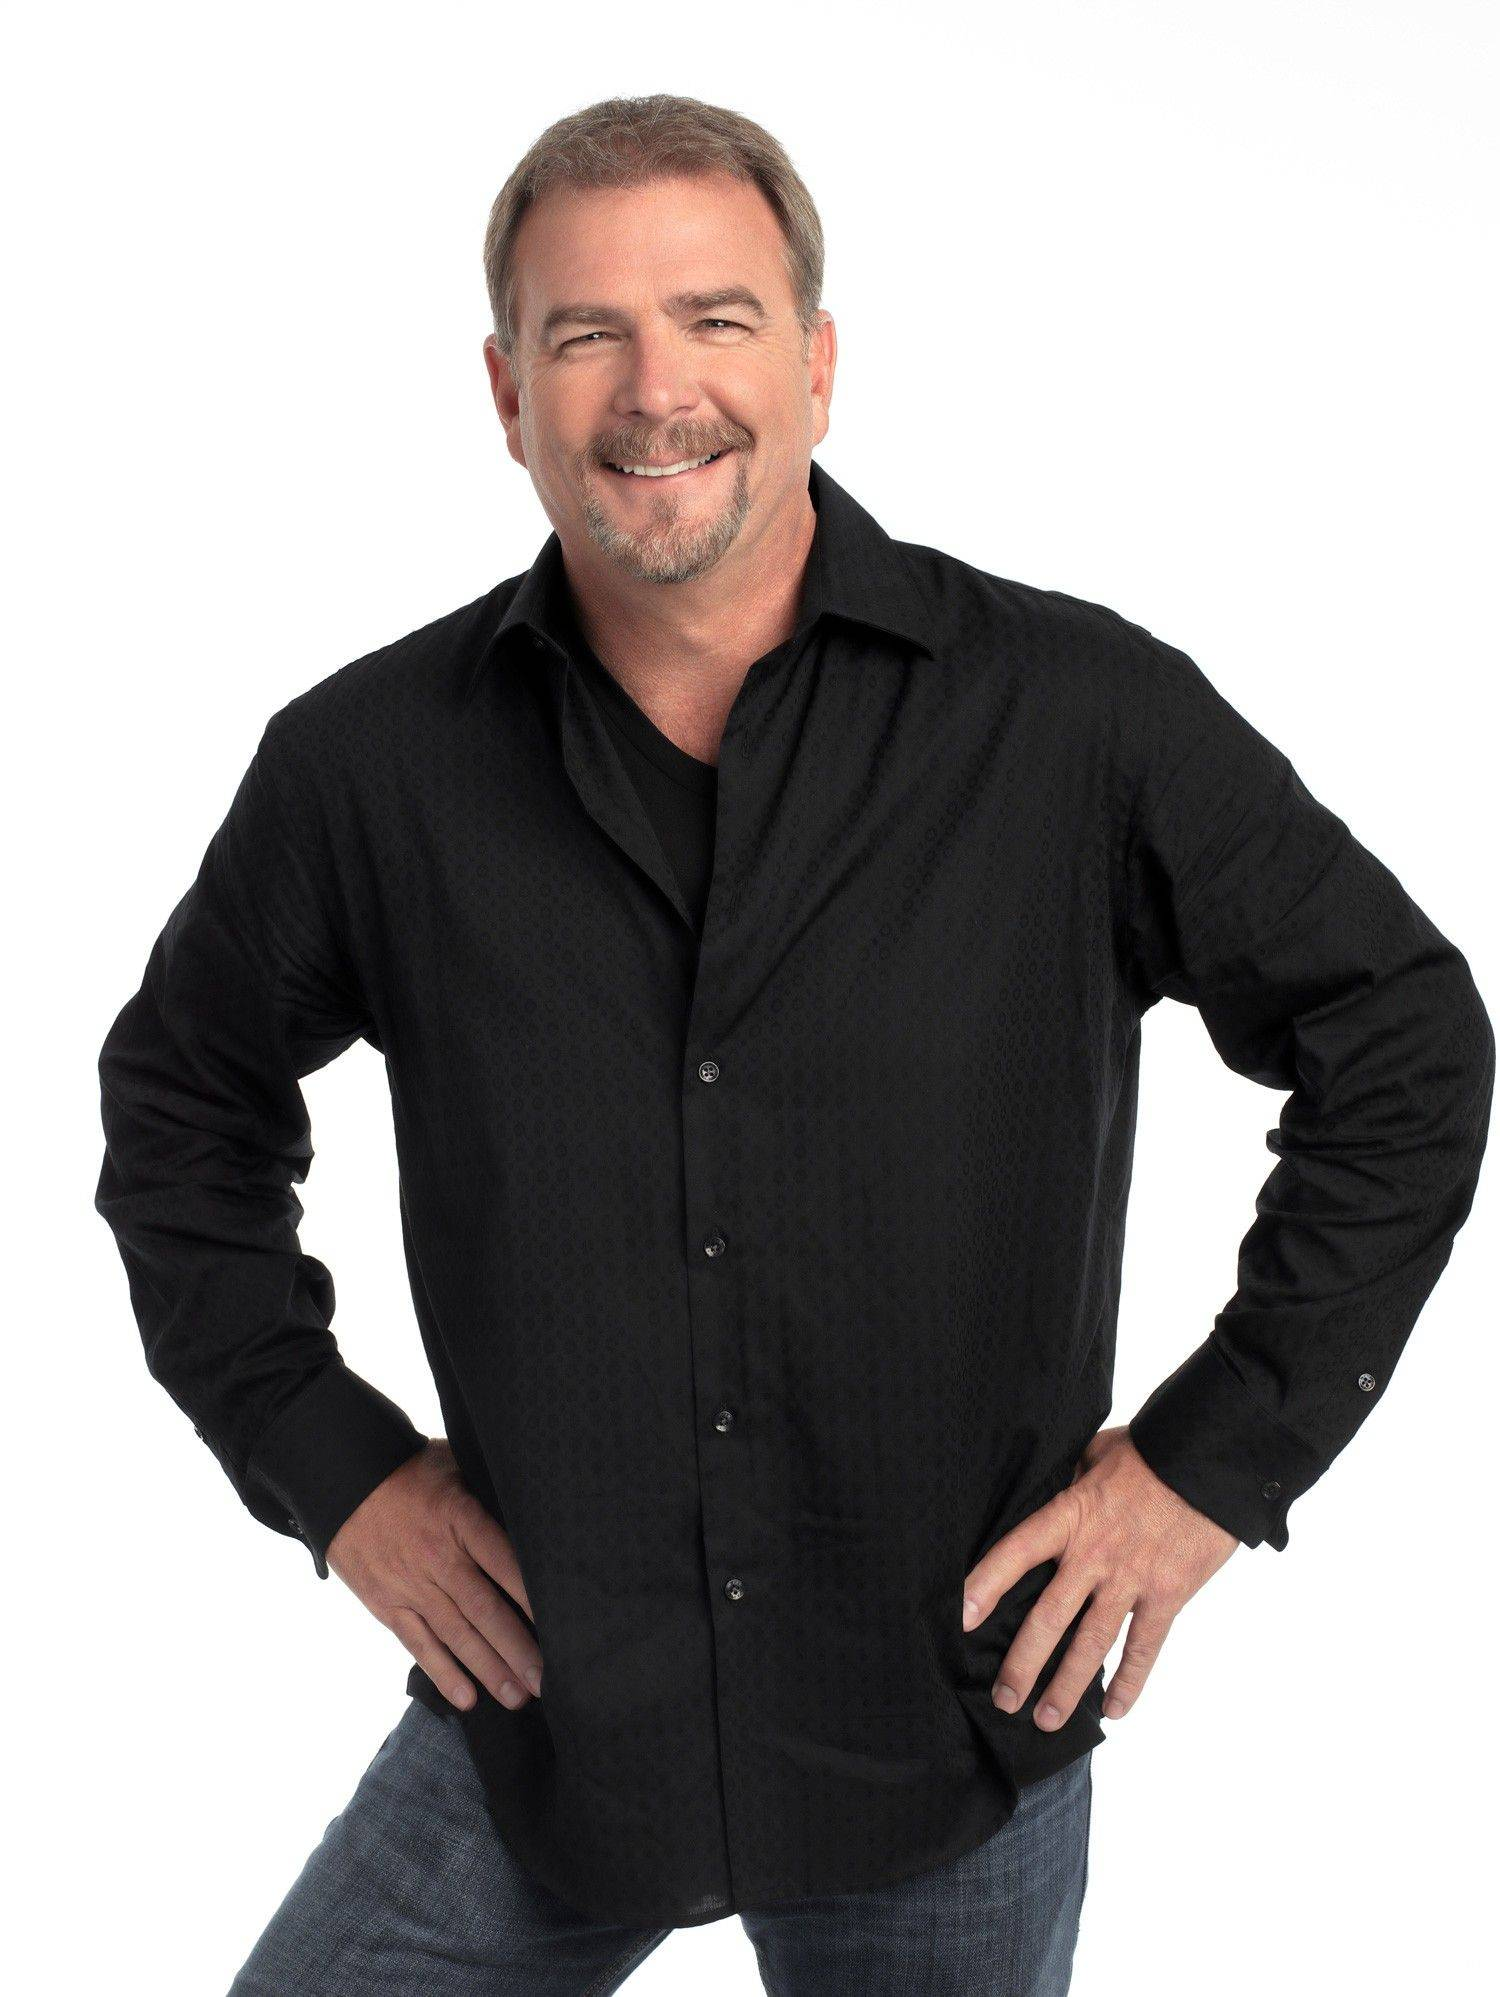 Comedian Bill Engvall performs two shows on Saturday, Oct. 22, at the Paramount Theatre in Aurora.